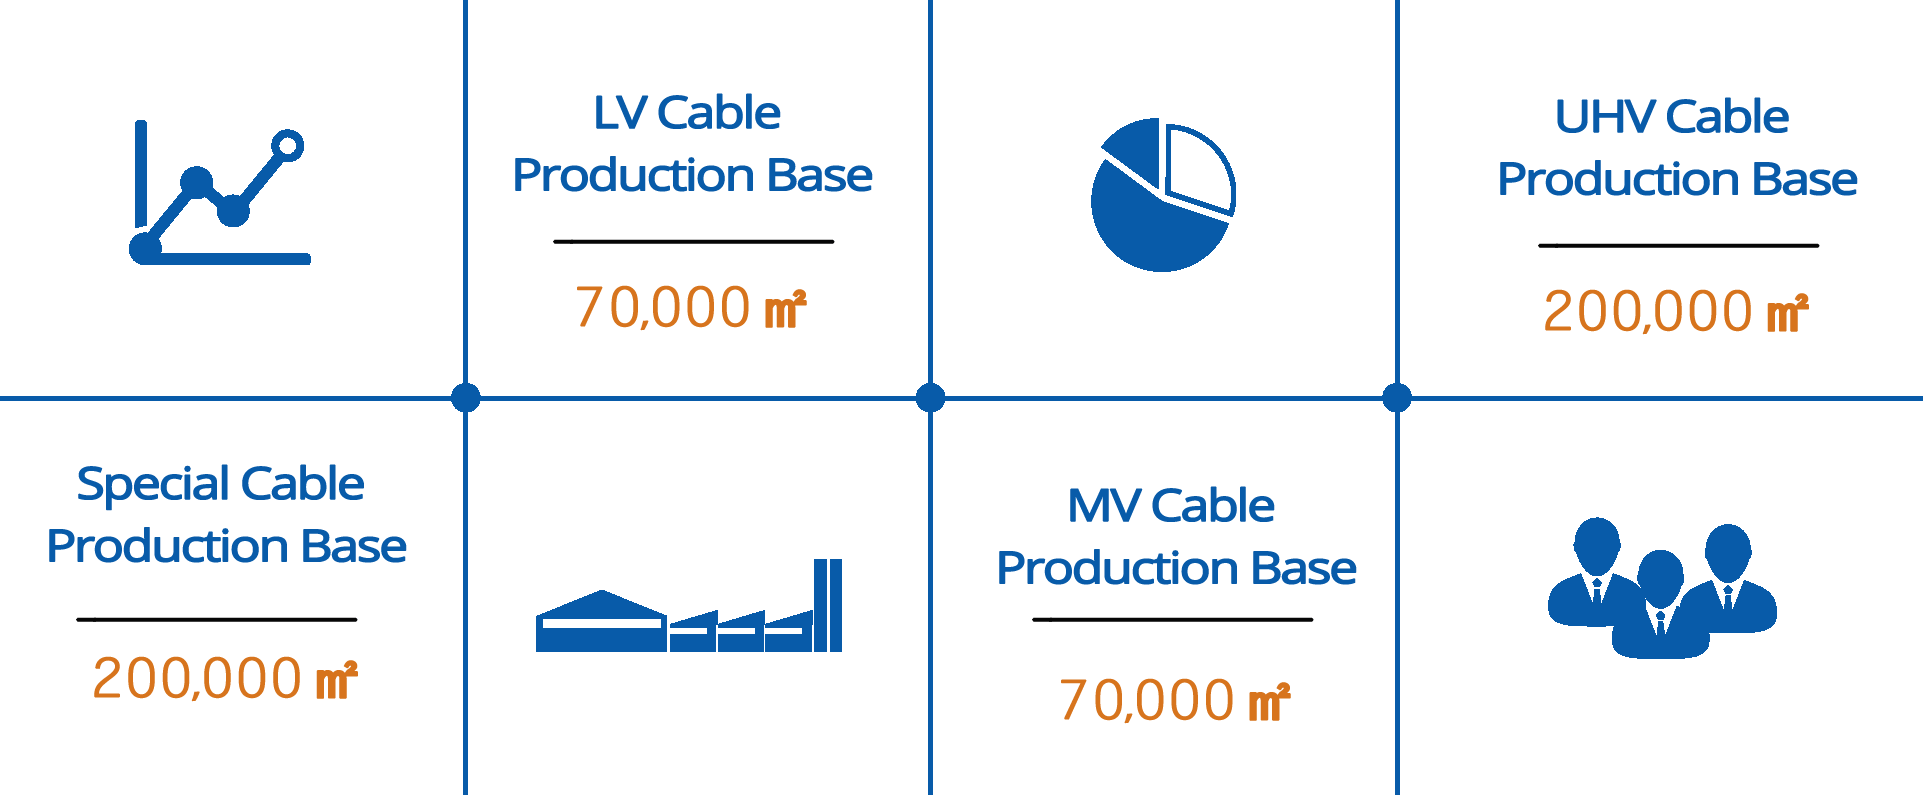 11kv-xlpe-cable Description